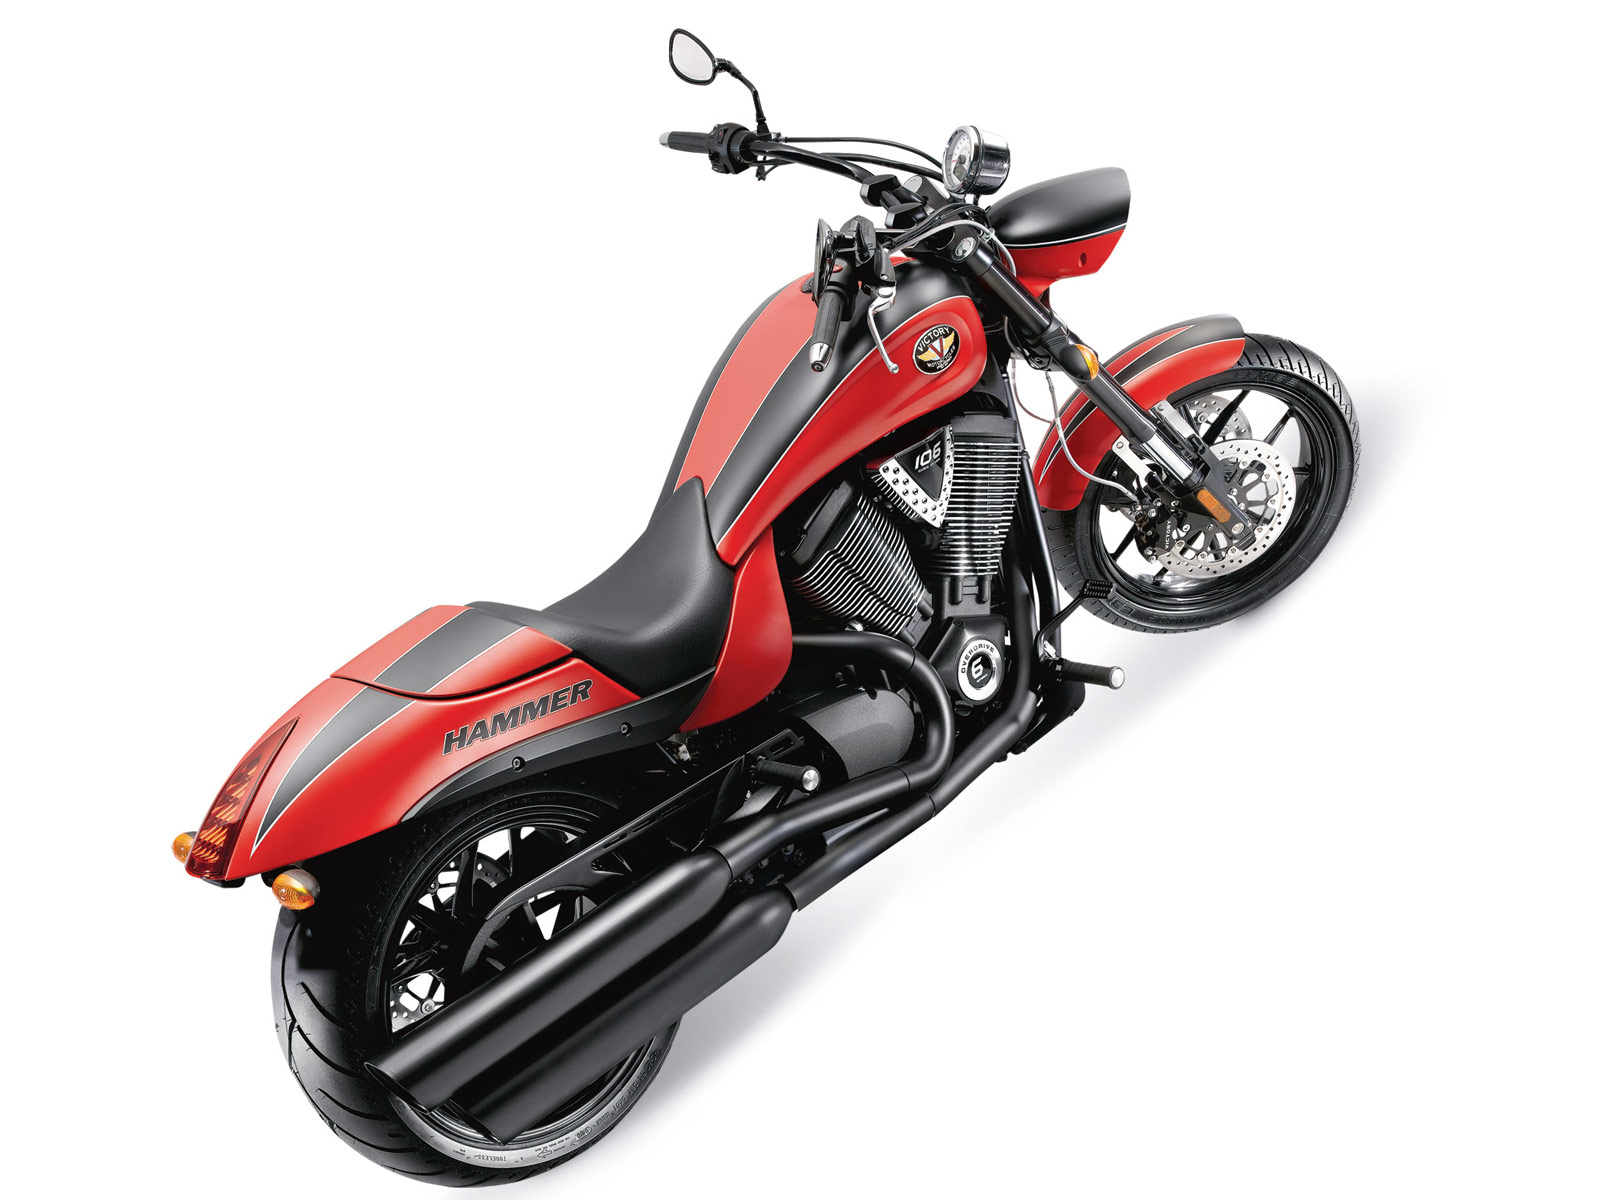 2011 Victory Hammer S Accident Lawyers Info Pictures